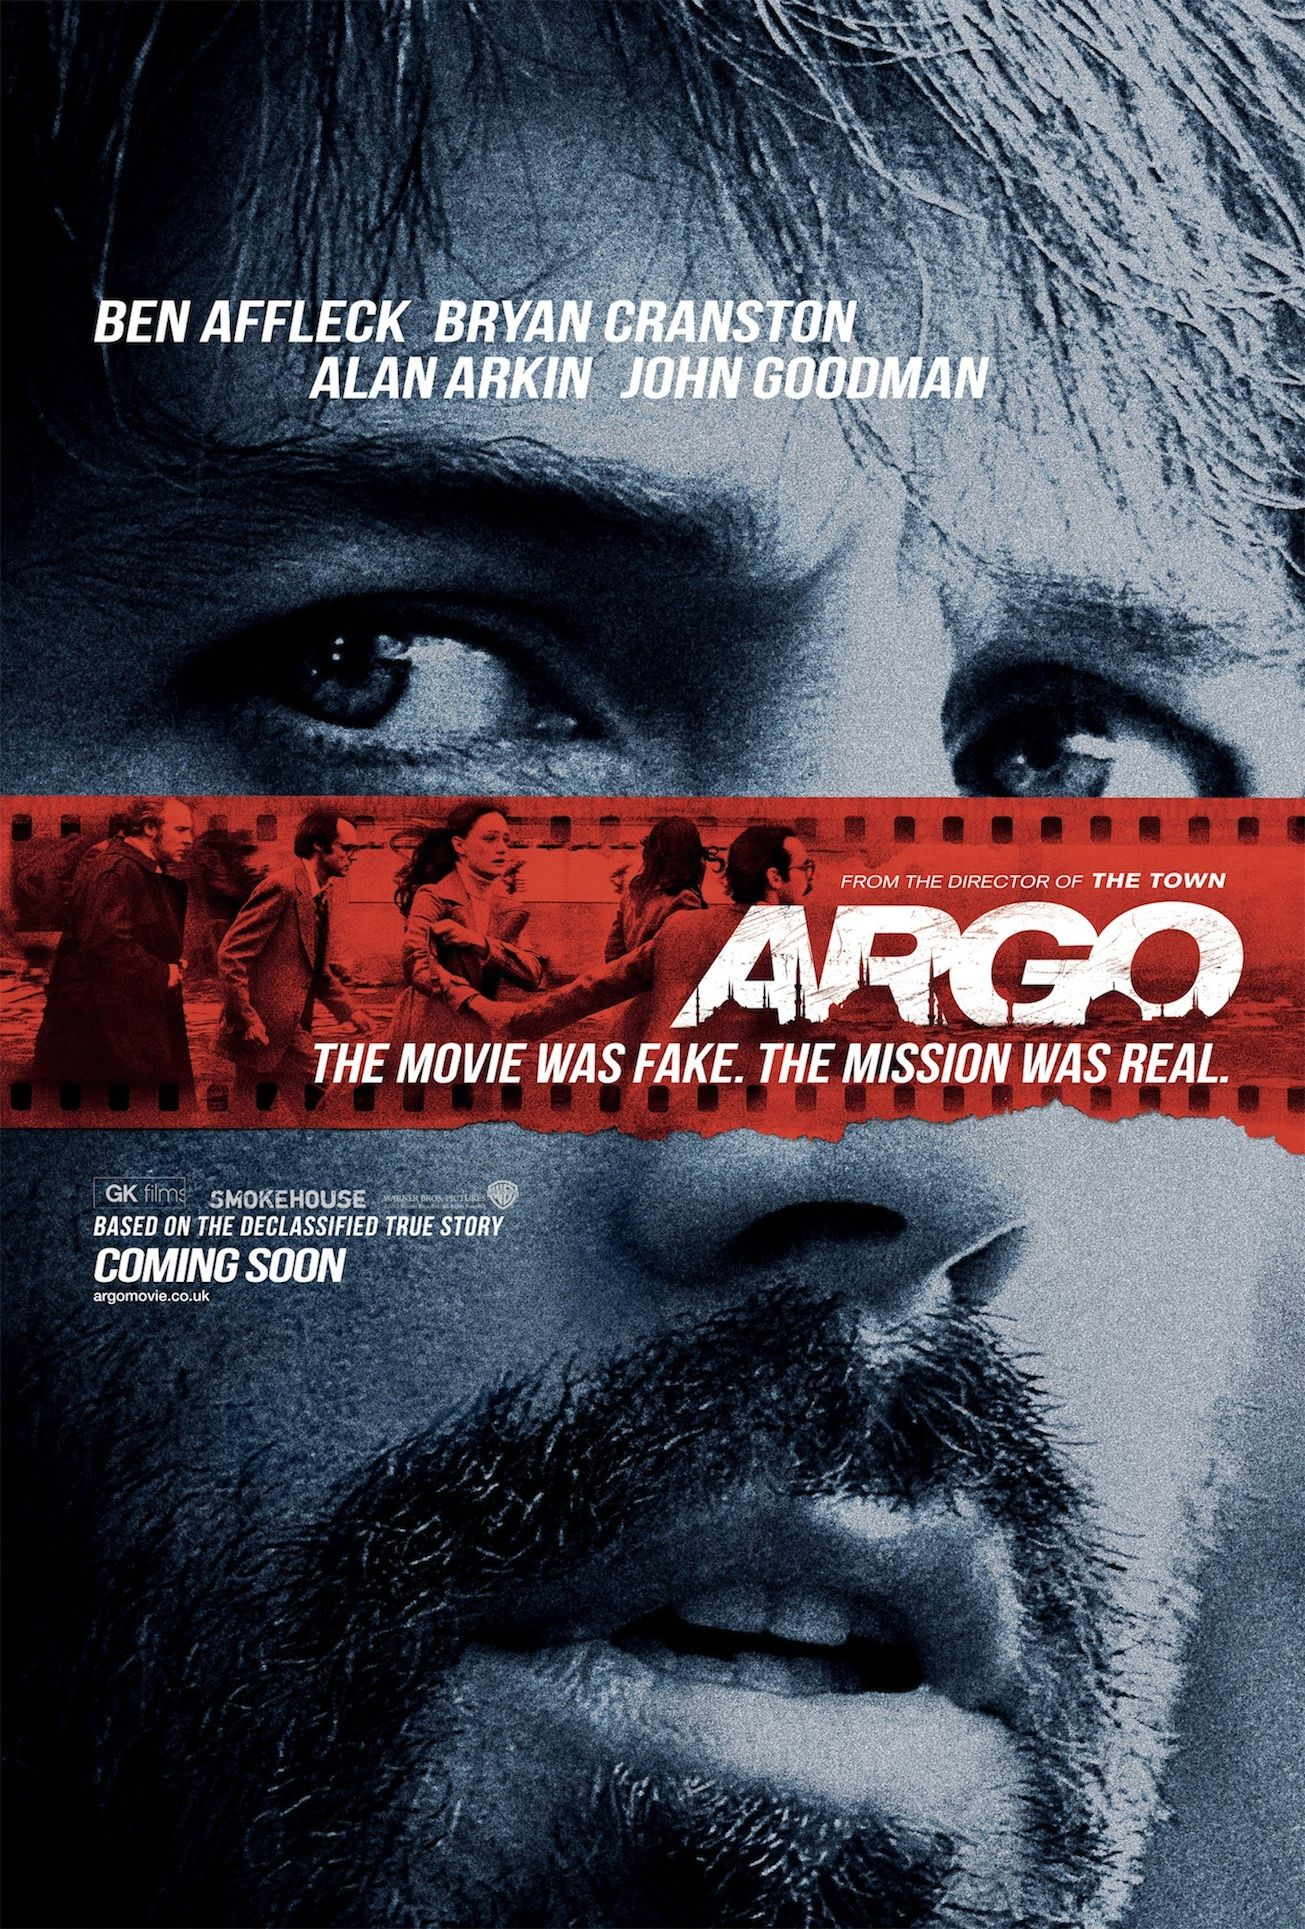 argo this movie was one of the best movies i have ever seen it